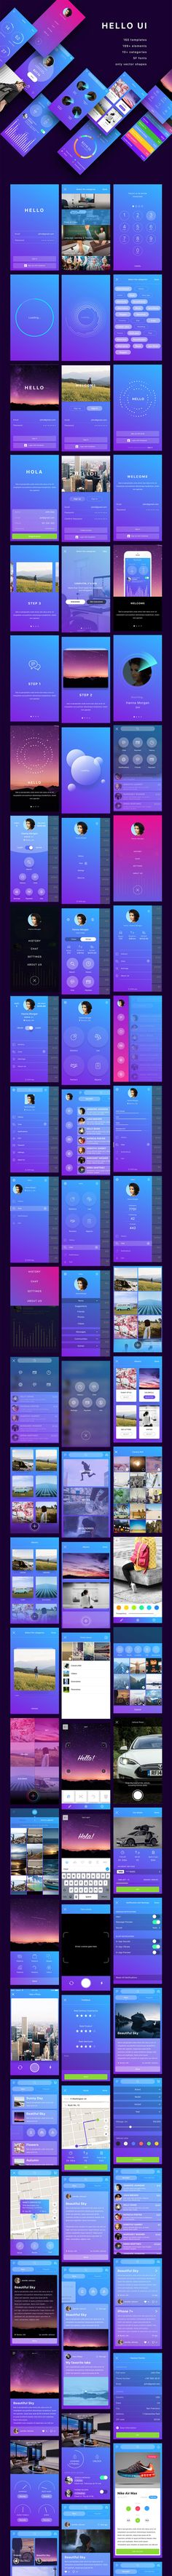 Hello UI Kit by Yuriy Kondratkov on Creative and professional Ui App Design Kit Template Inspiration. To inspire your next creative application designs for Photoshop, Sketch and Adobe Experience with flat modern, clean, creative design layout standards. Mobile App Design, Mobile Ui, Application Ui Design, Application Mobile, App Ui Design, User Interface Design, Ui Kit, Wireframe, Ui Ux Designer